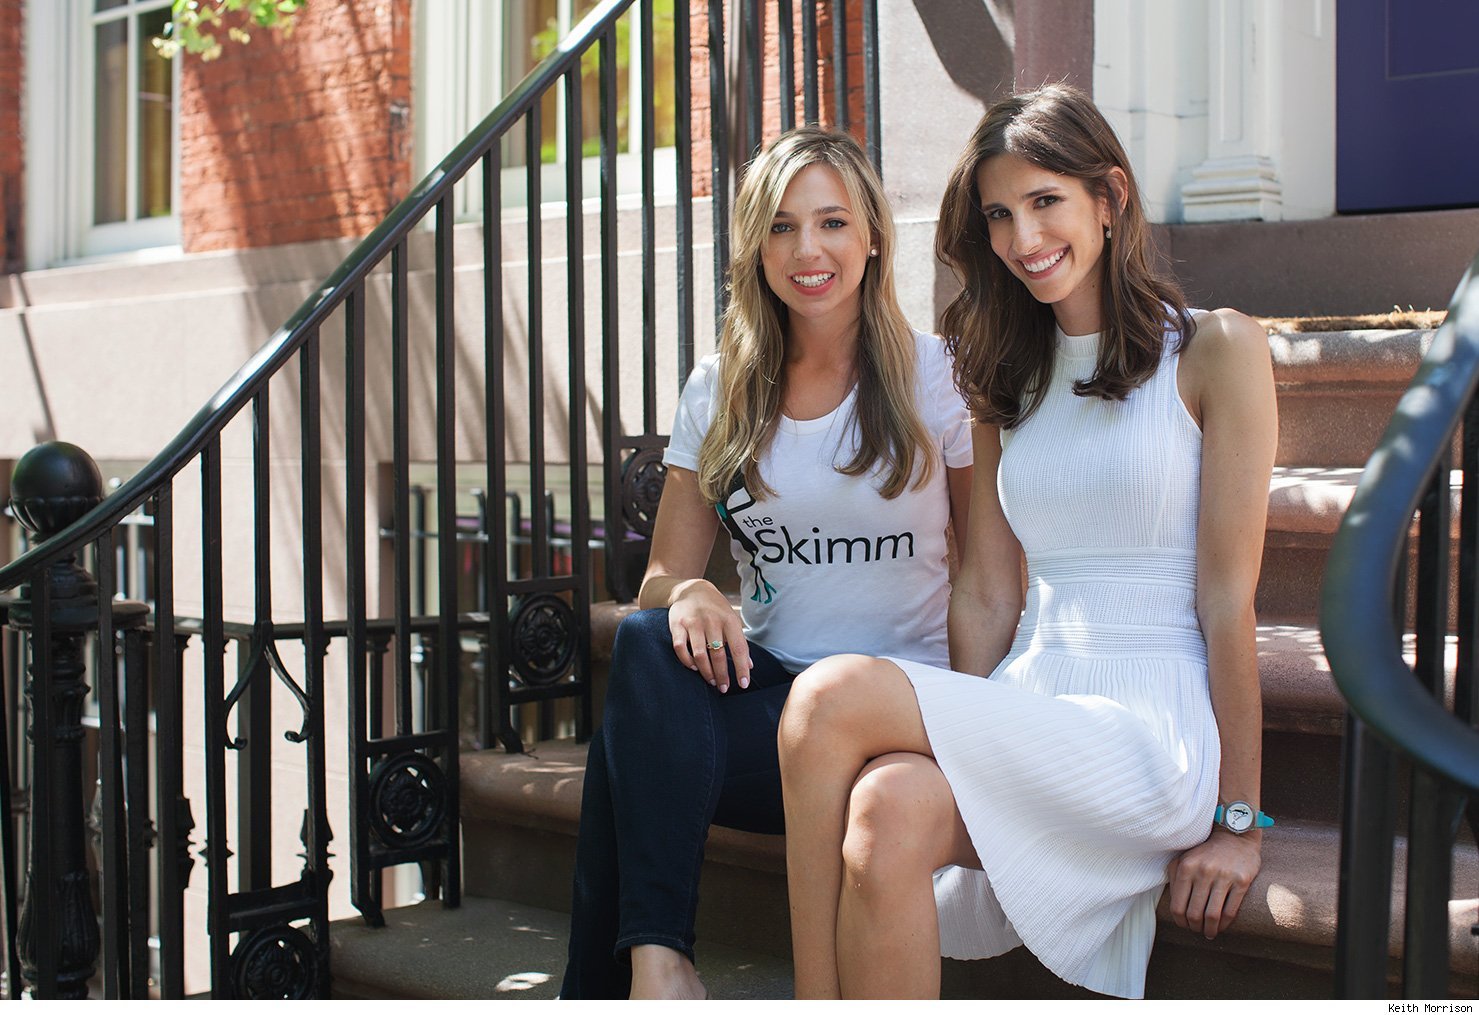 Exclusive: An Interview with theSkimm Girls